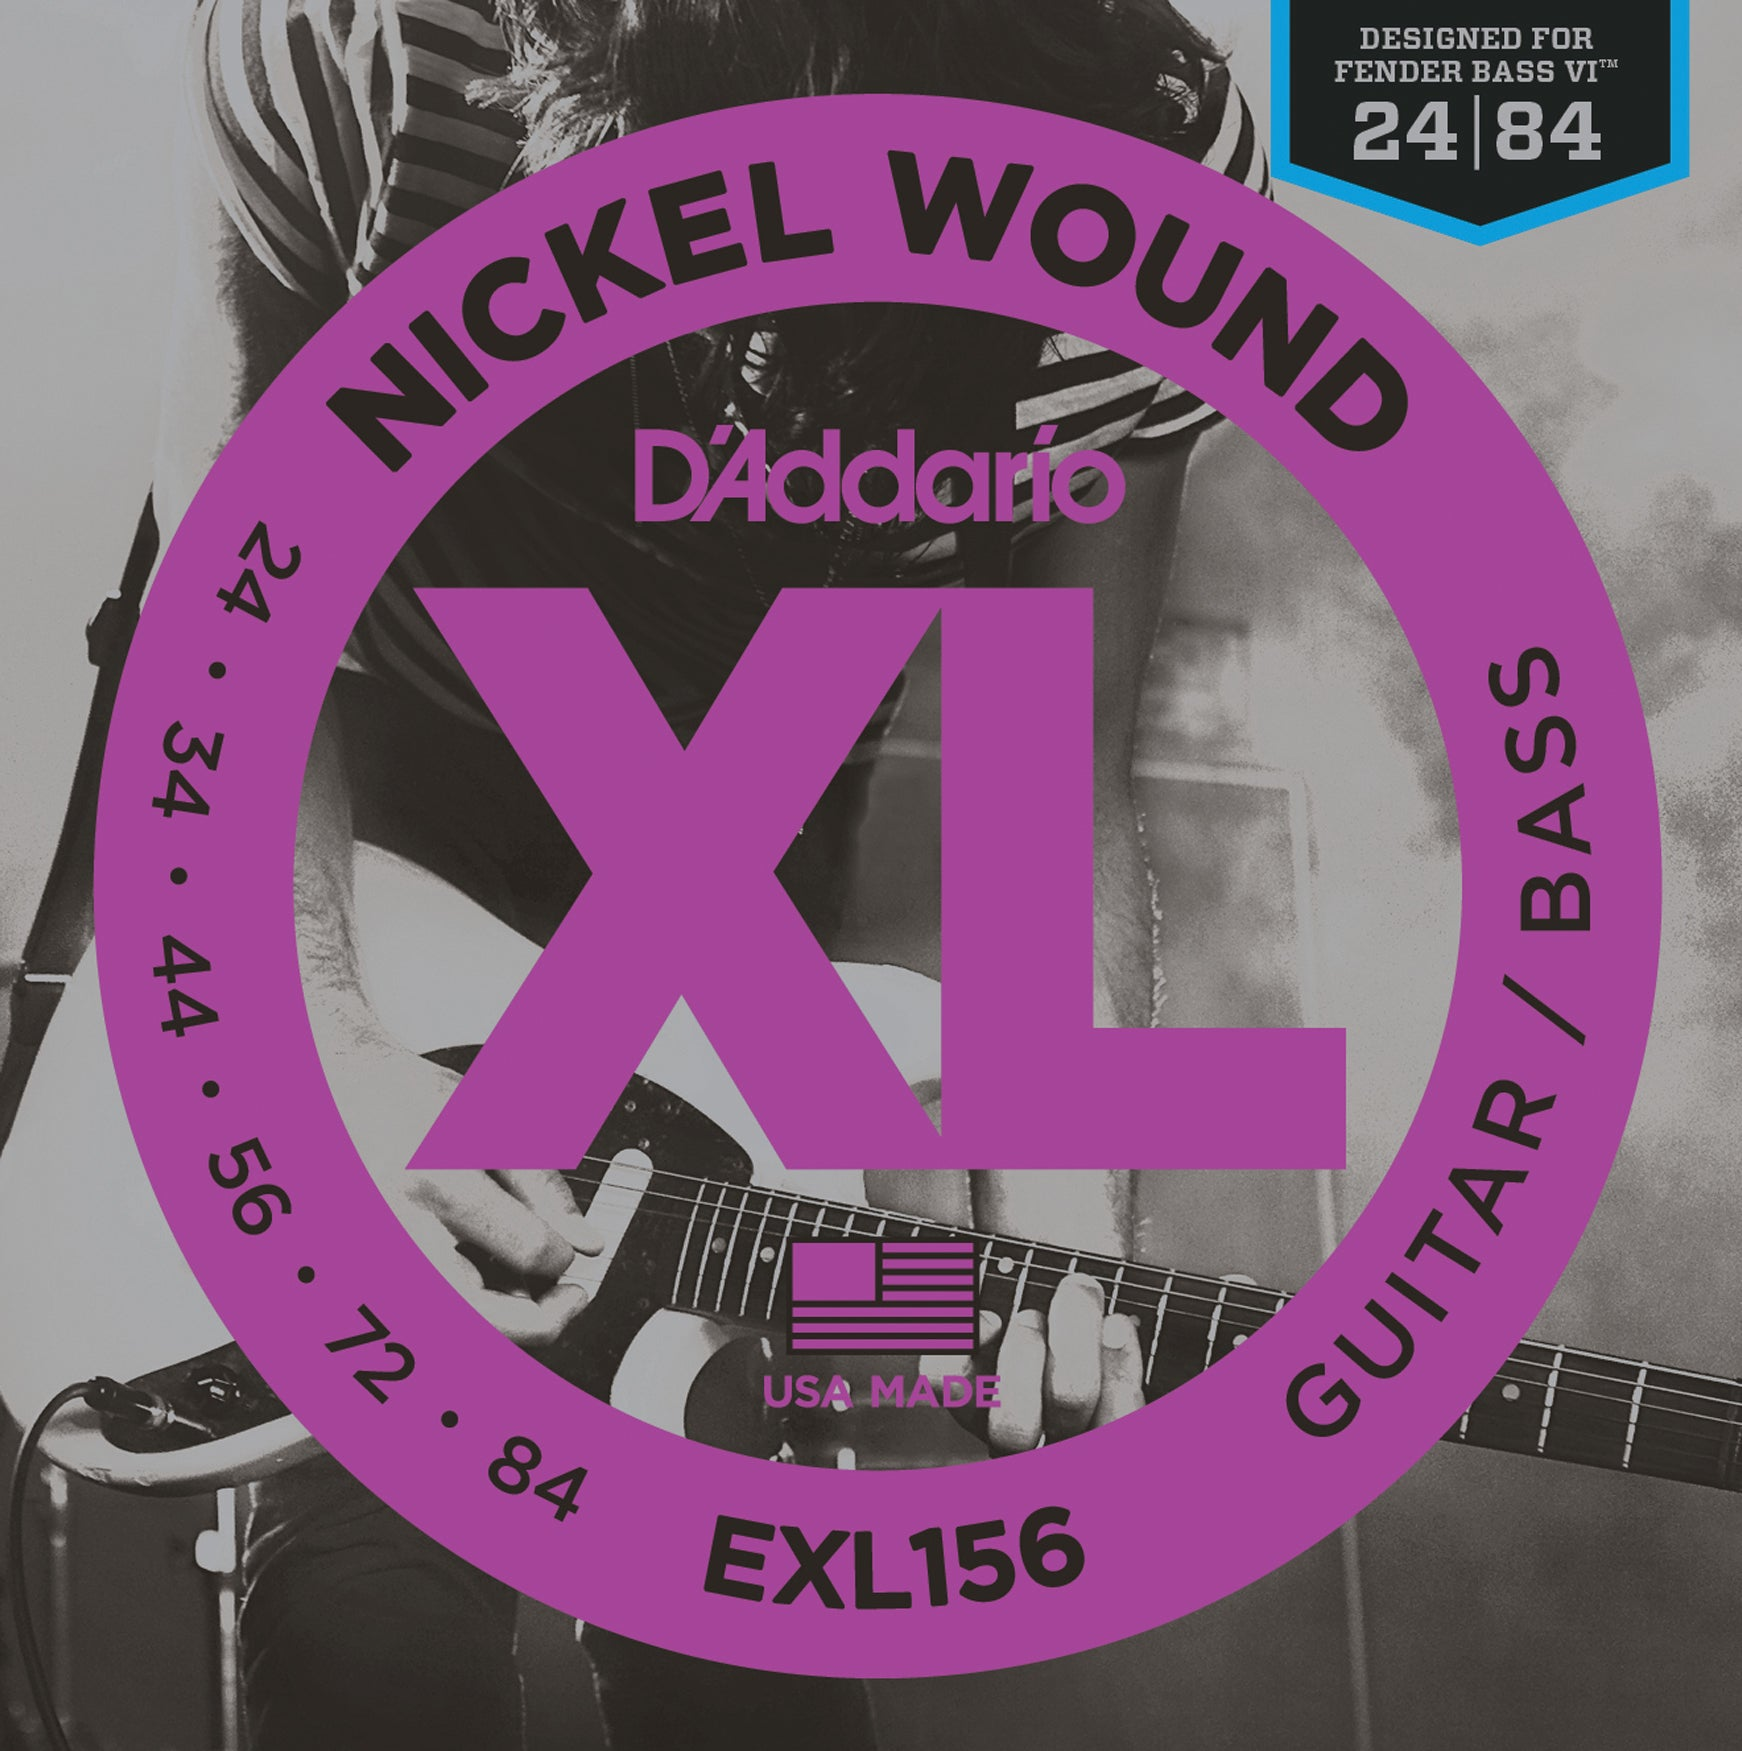 D'ADDARIO NICKEL WOUND BASS VI STRINGS 24-84